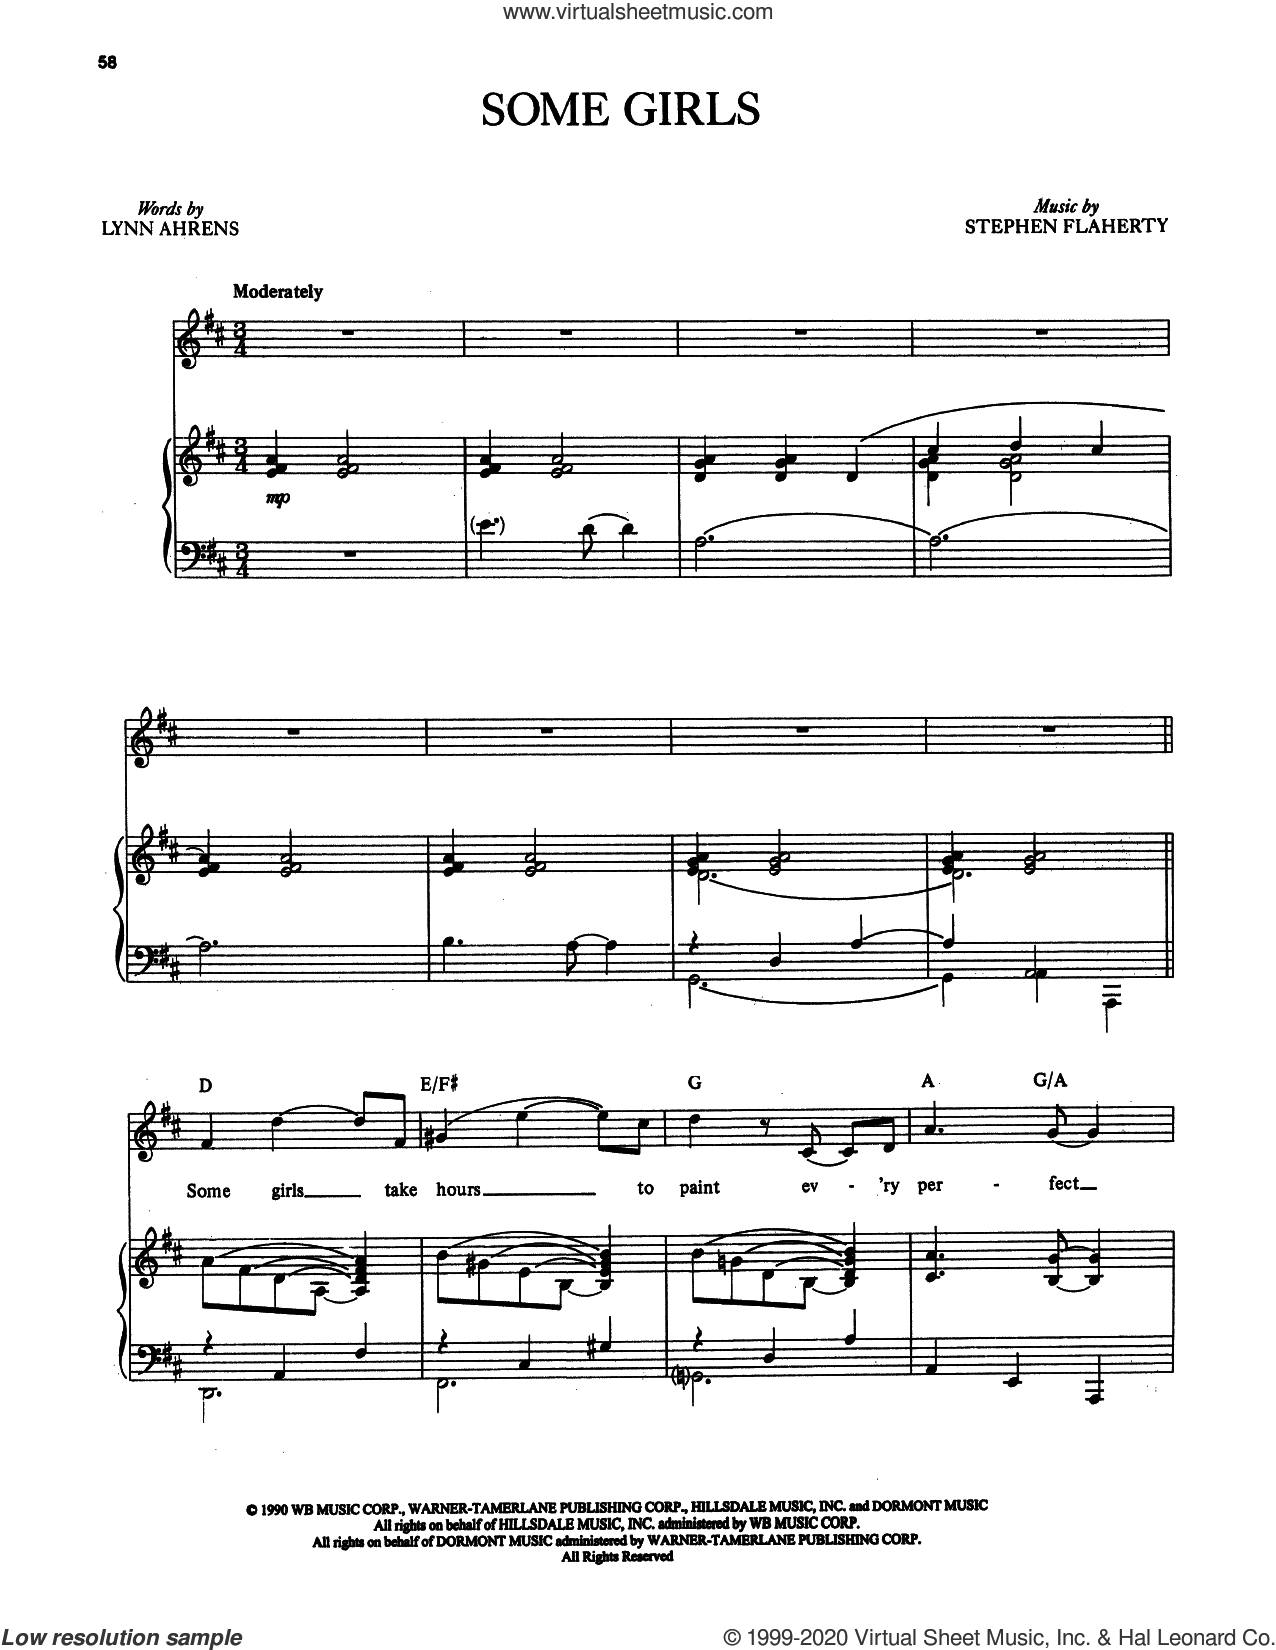 Some Girls (from Once on This Island) sheet music for voice and piano by Stephen Flaherty, The Rolling Stones, Keith Richards, Lynn Ahrens, Mick Jagger and Stephen Flaherty and Lynn Ahrens, intermediate skill level